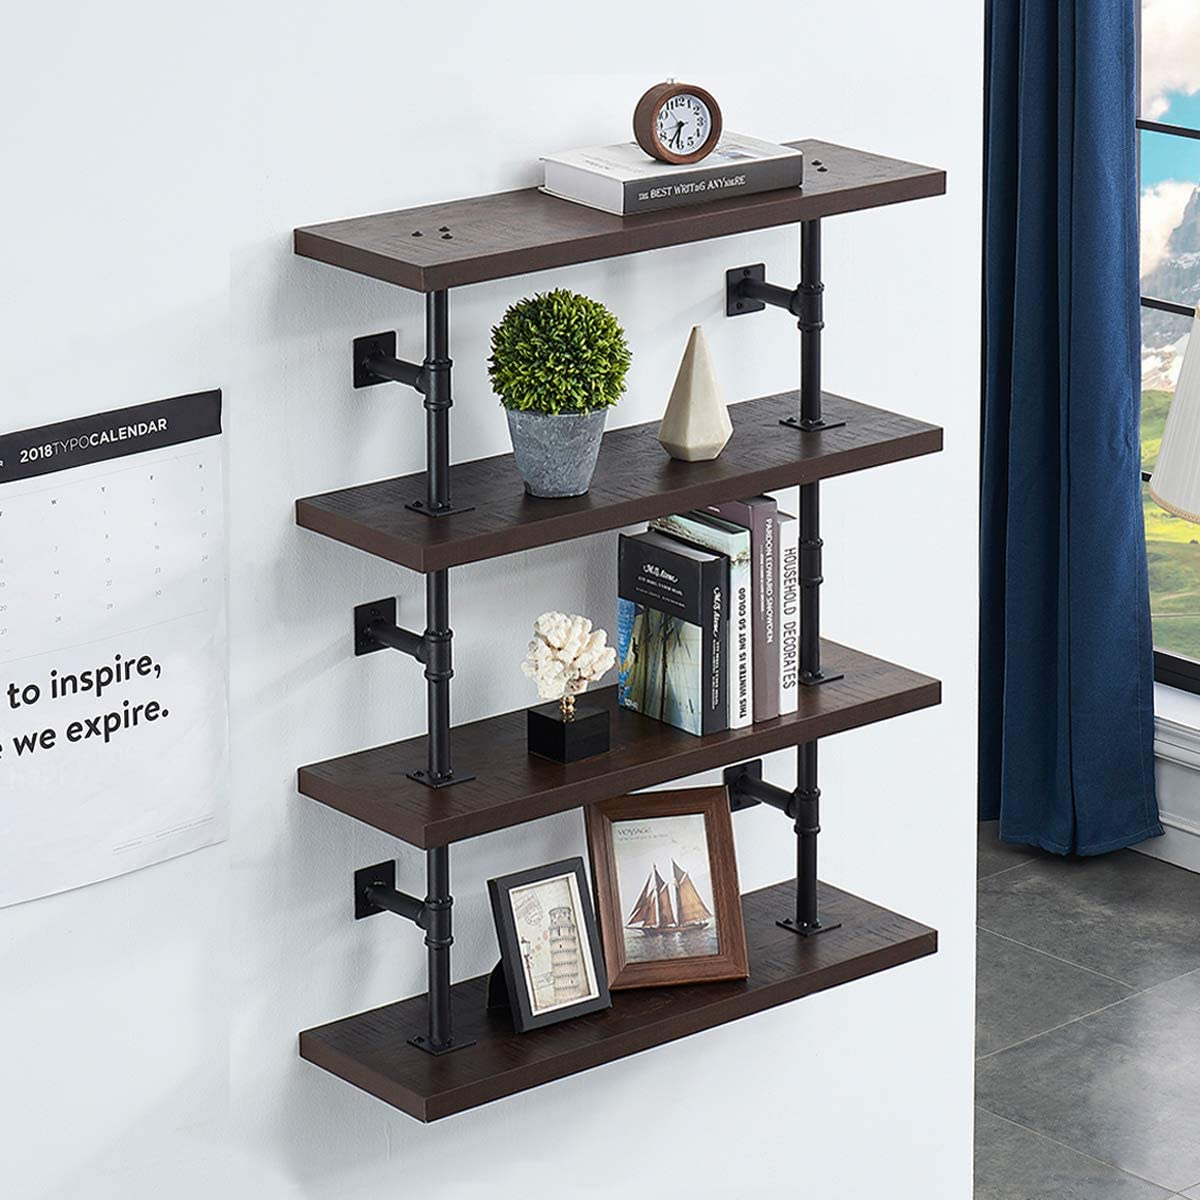 FurniChoi Rustic Wall Pipe Shelf, Wood and Metal Floating Shelf, Industrial Hanging Display Shelf for Home and Office Organizer, 4 Tier, Espresso